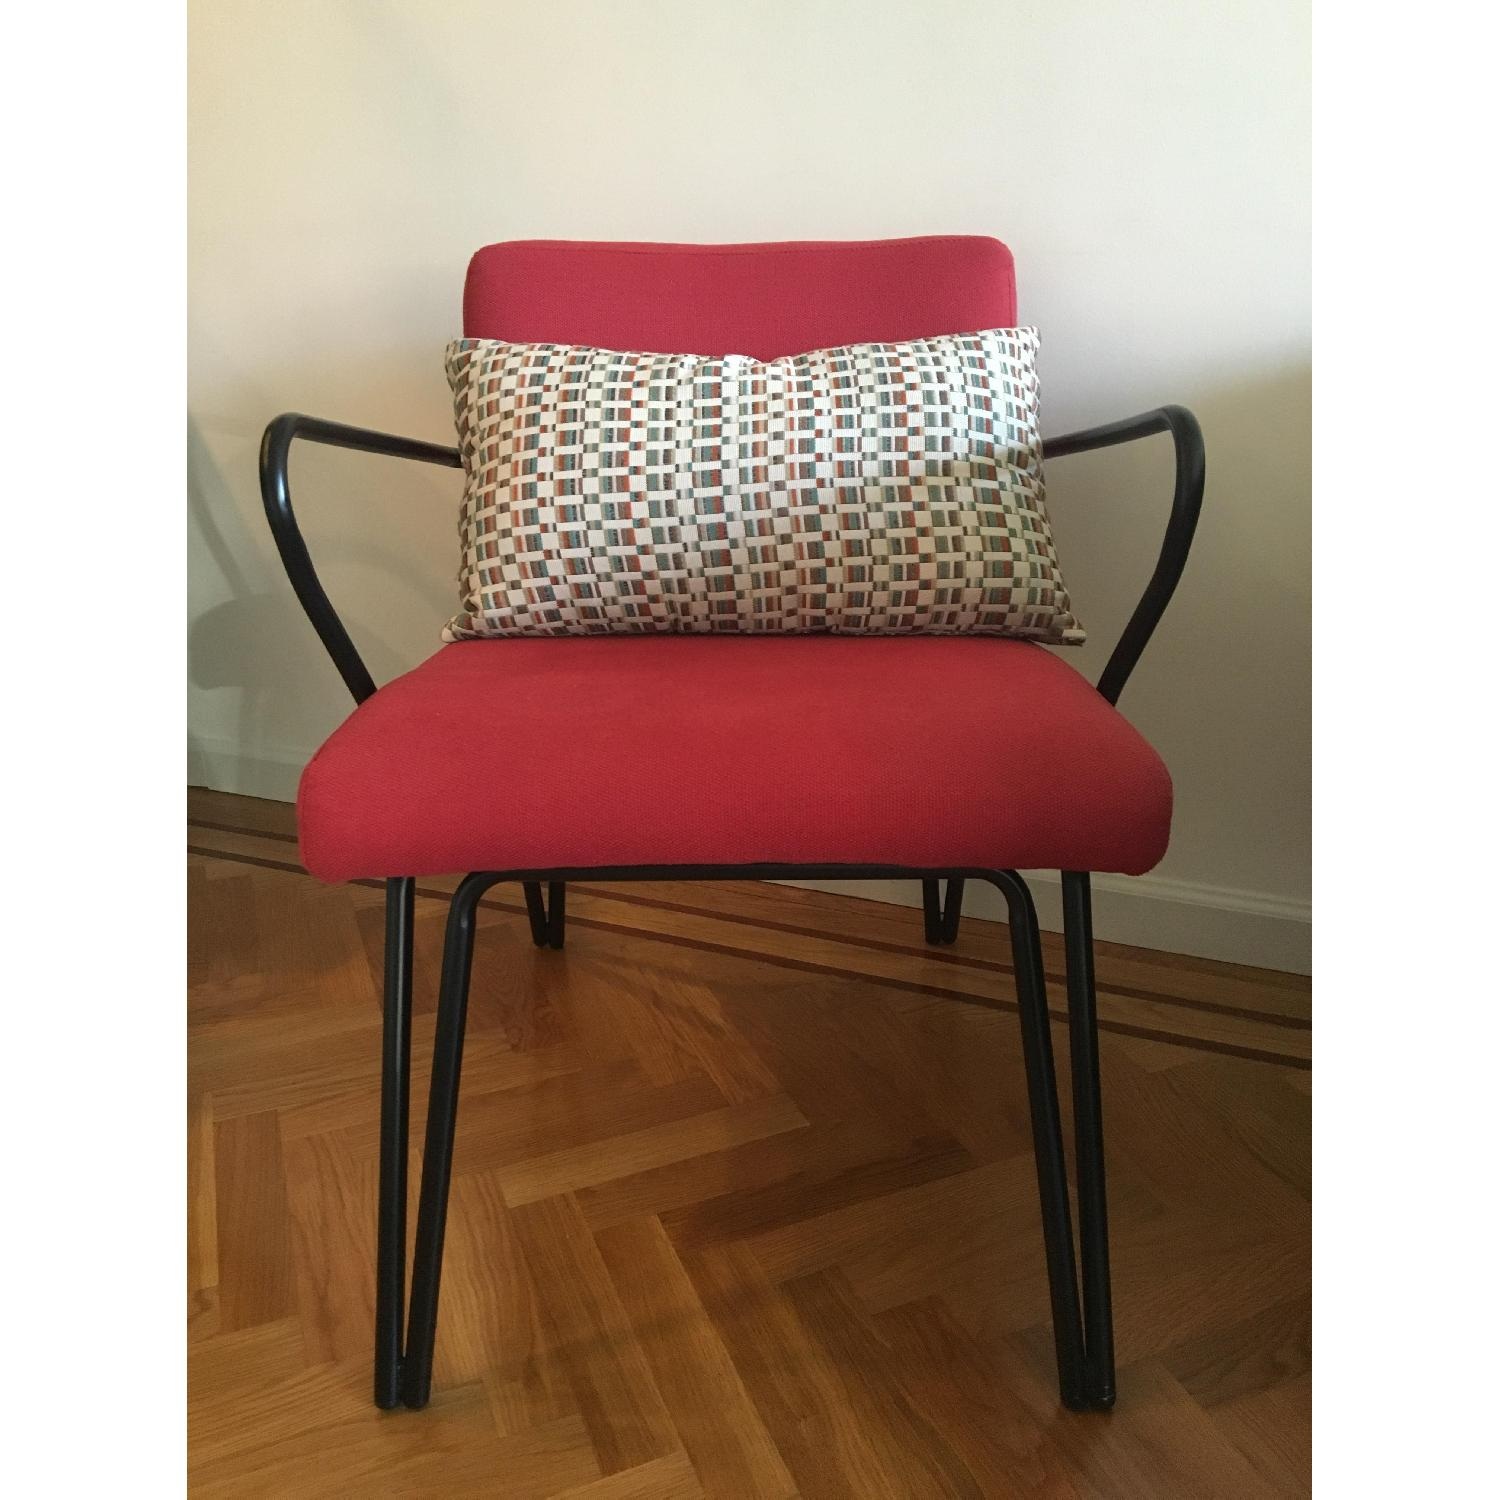 Red Upholstery Accent Chair - image-1